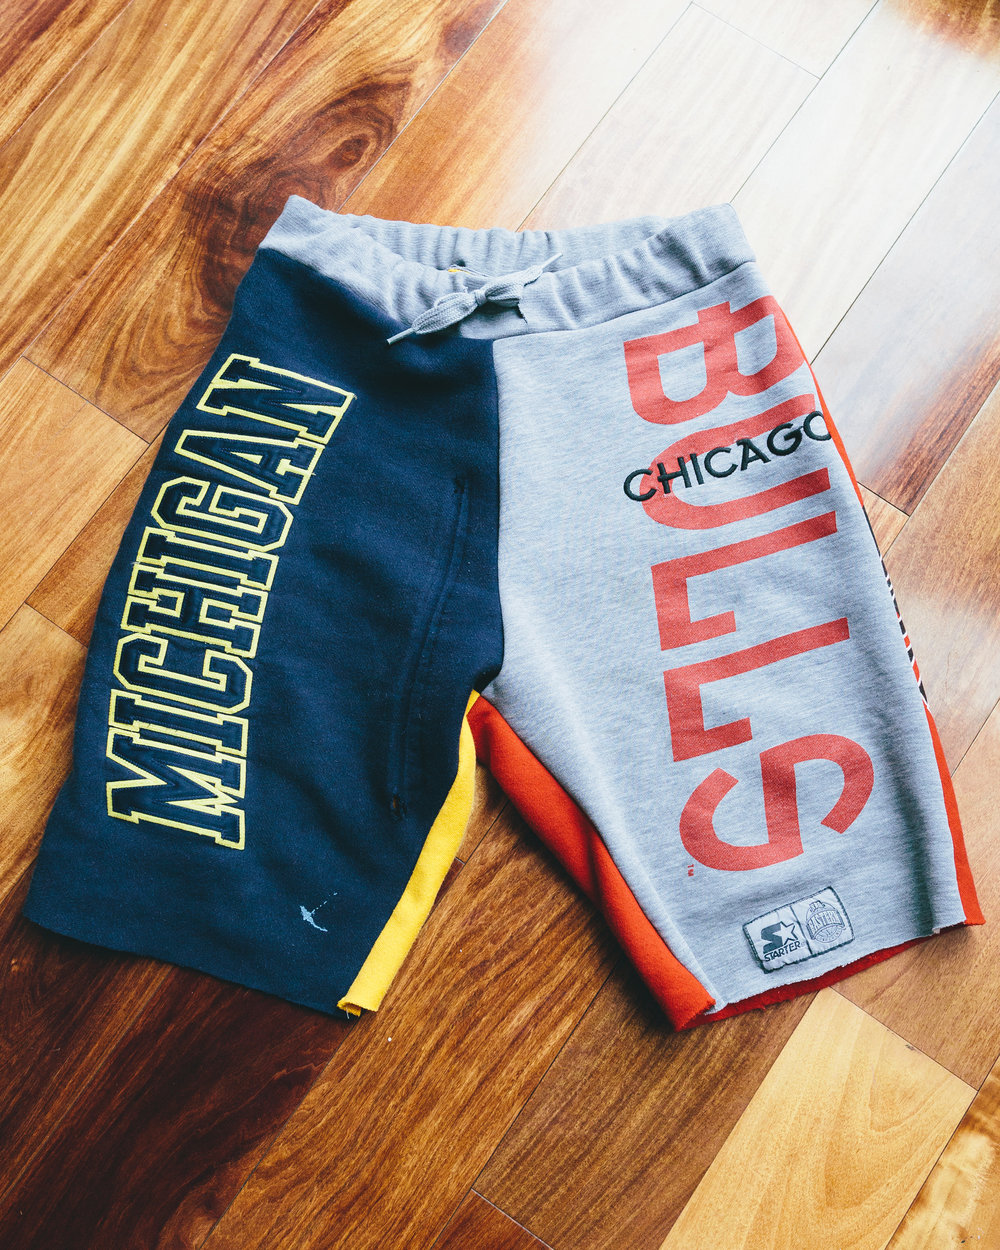 Michigan/Bulls Shorts - Midwest inspired by the States I've lived in.